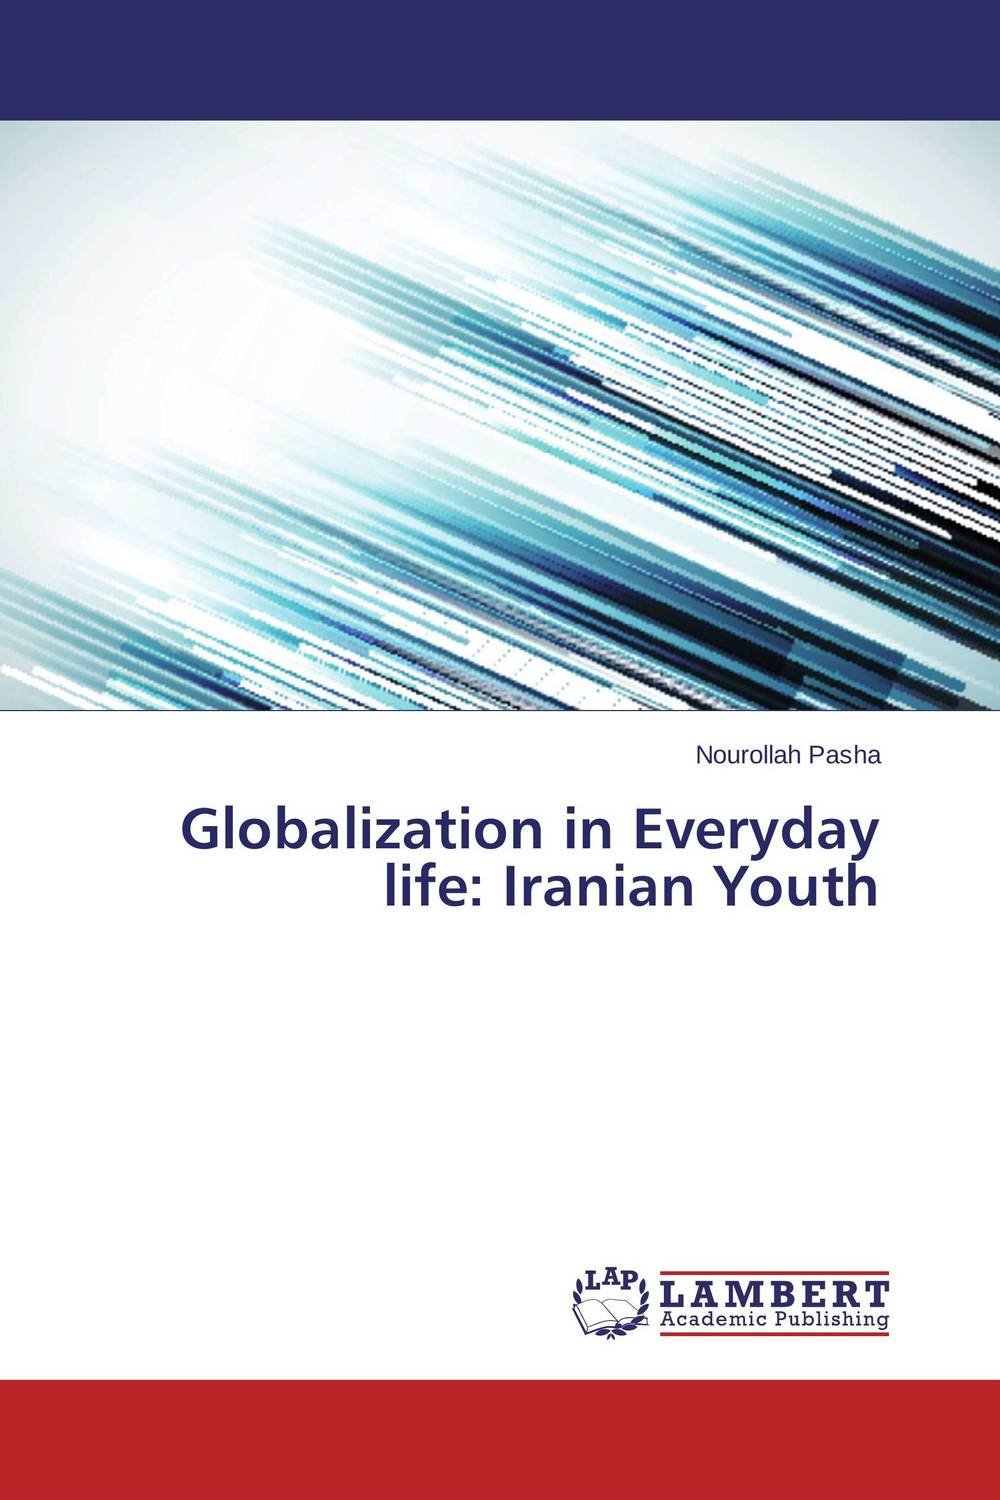 Globalization in Everyday life: Iranian Youth hp ce742a 307a yellow тонер картридж для color laserjet cp5225